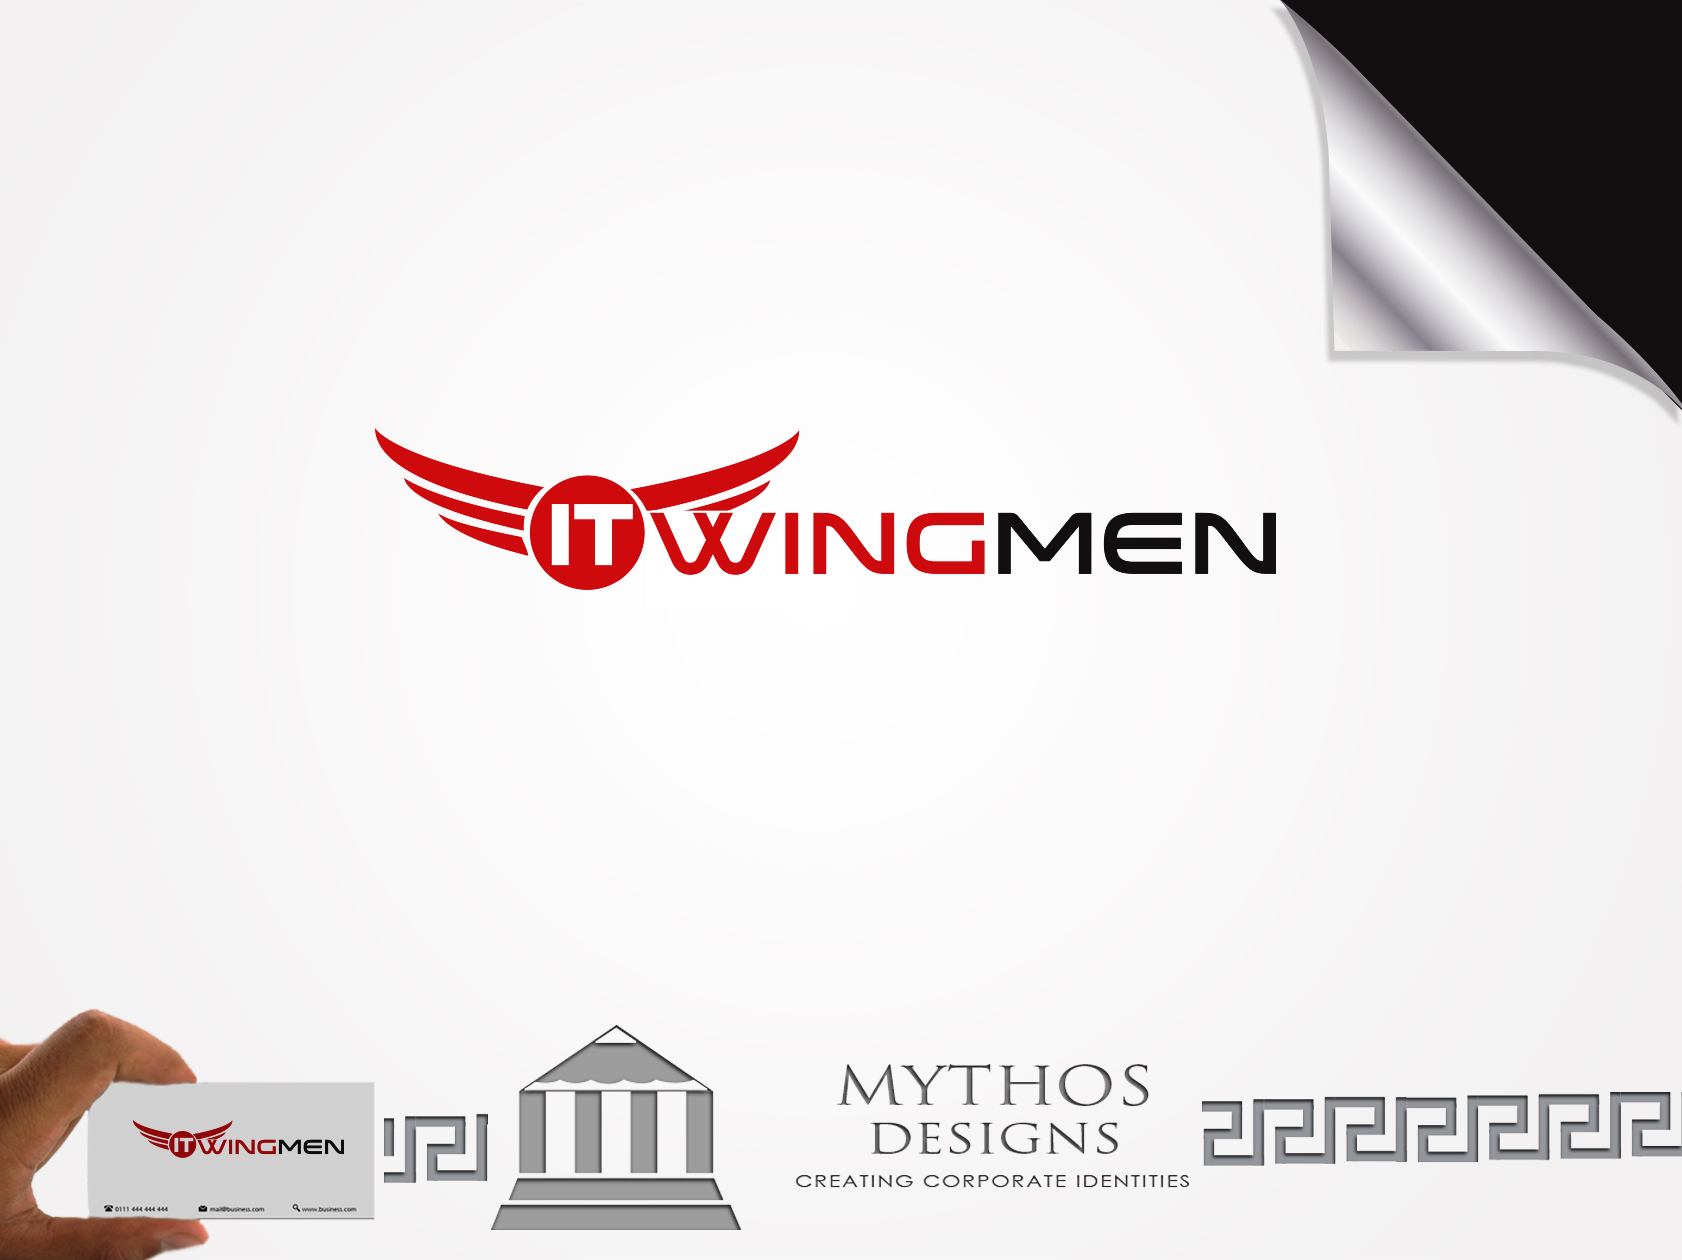 Logo Design by Mythos Designs - Entry No. 109 in the Logo Design Contest New Logo Design for IT Wingmen.